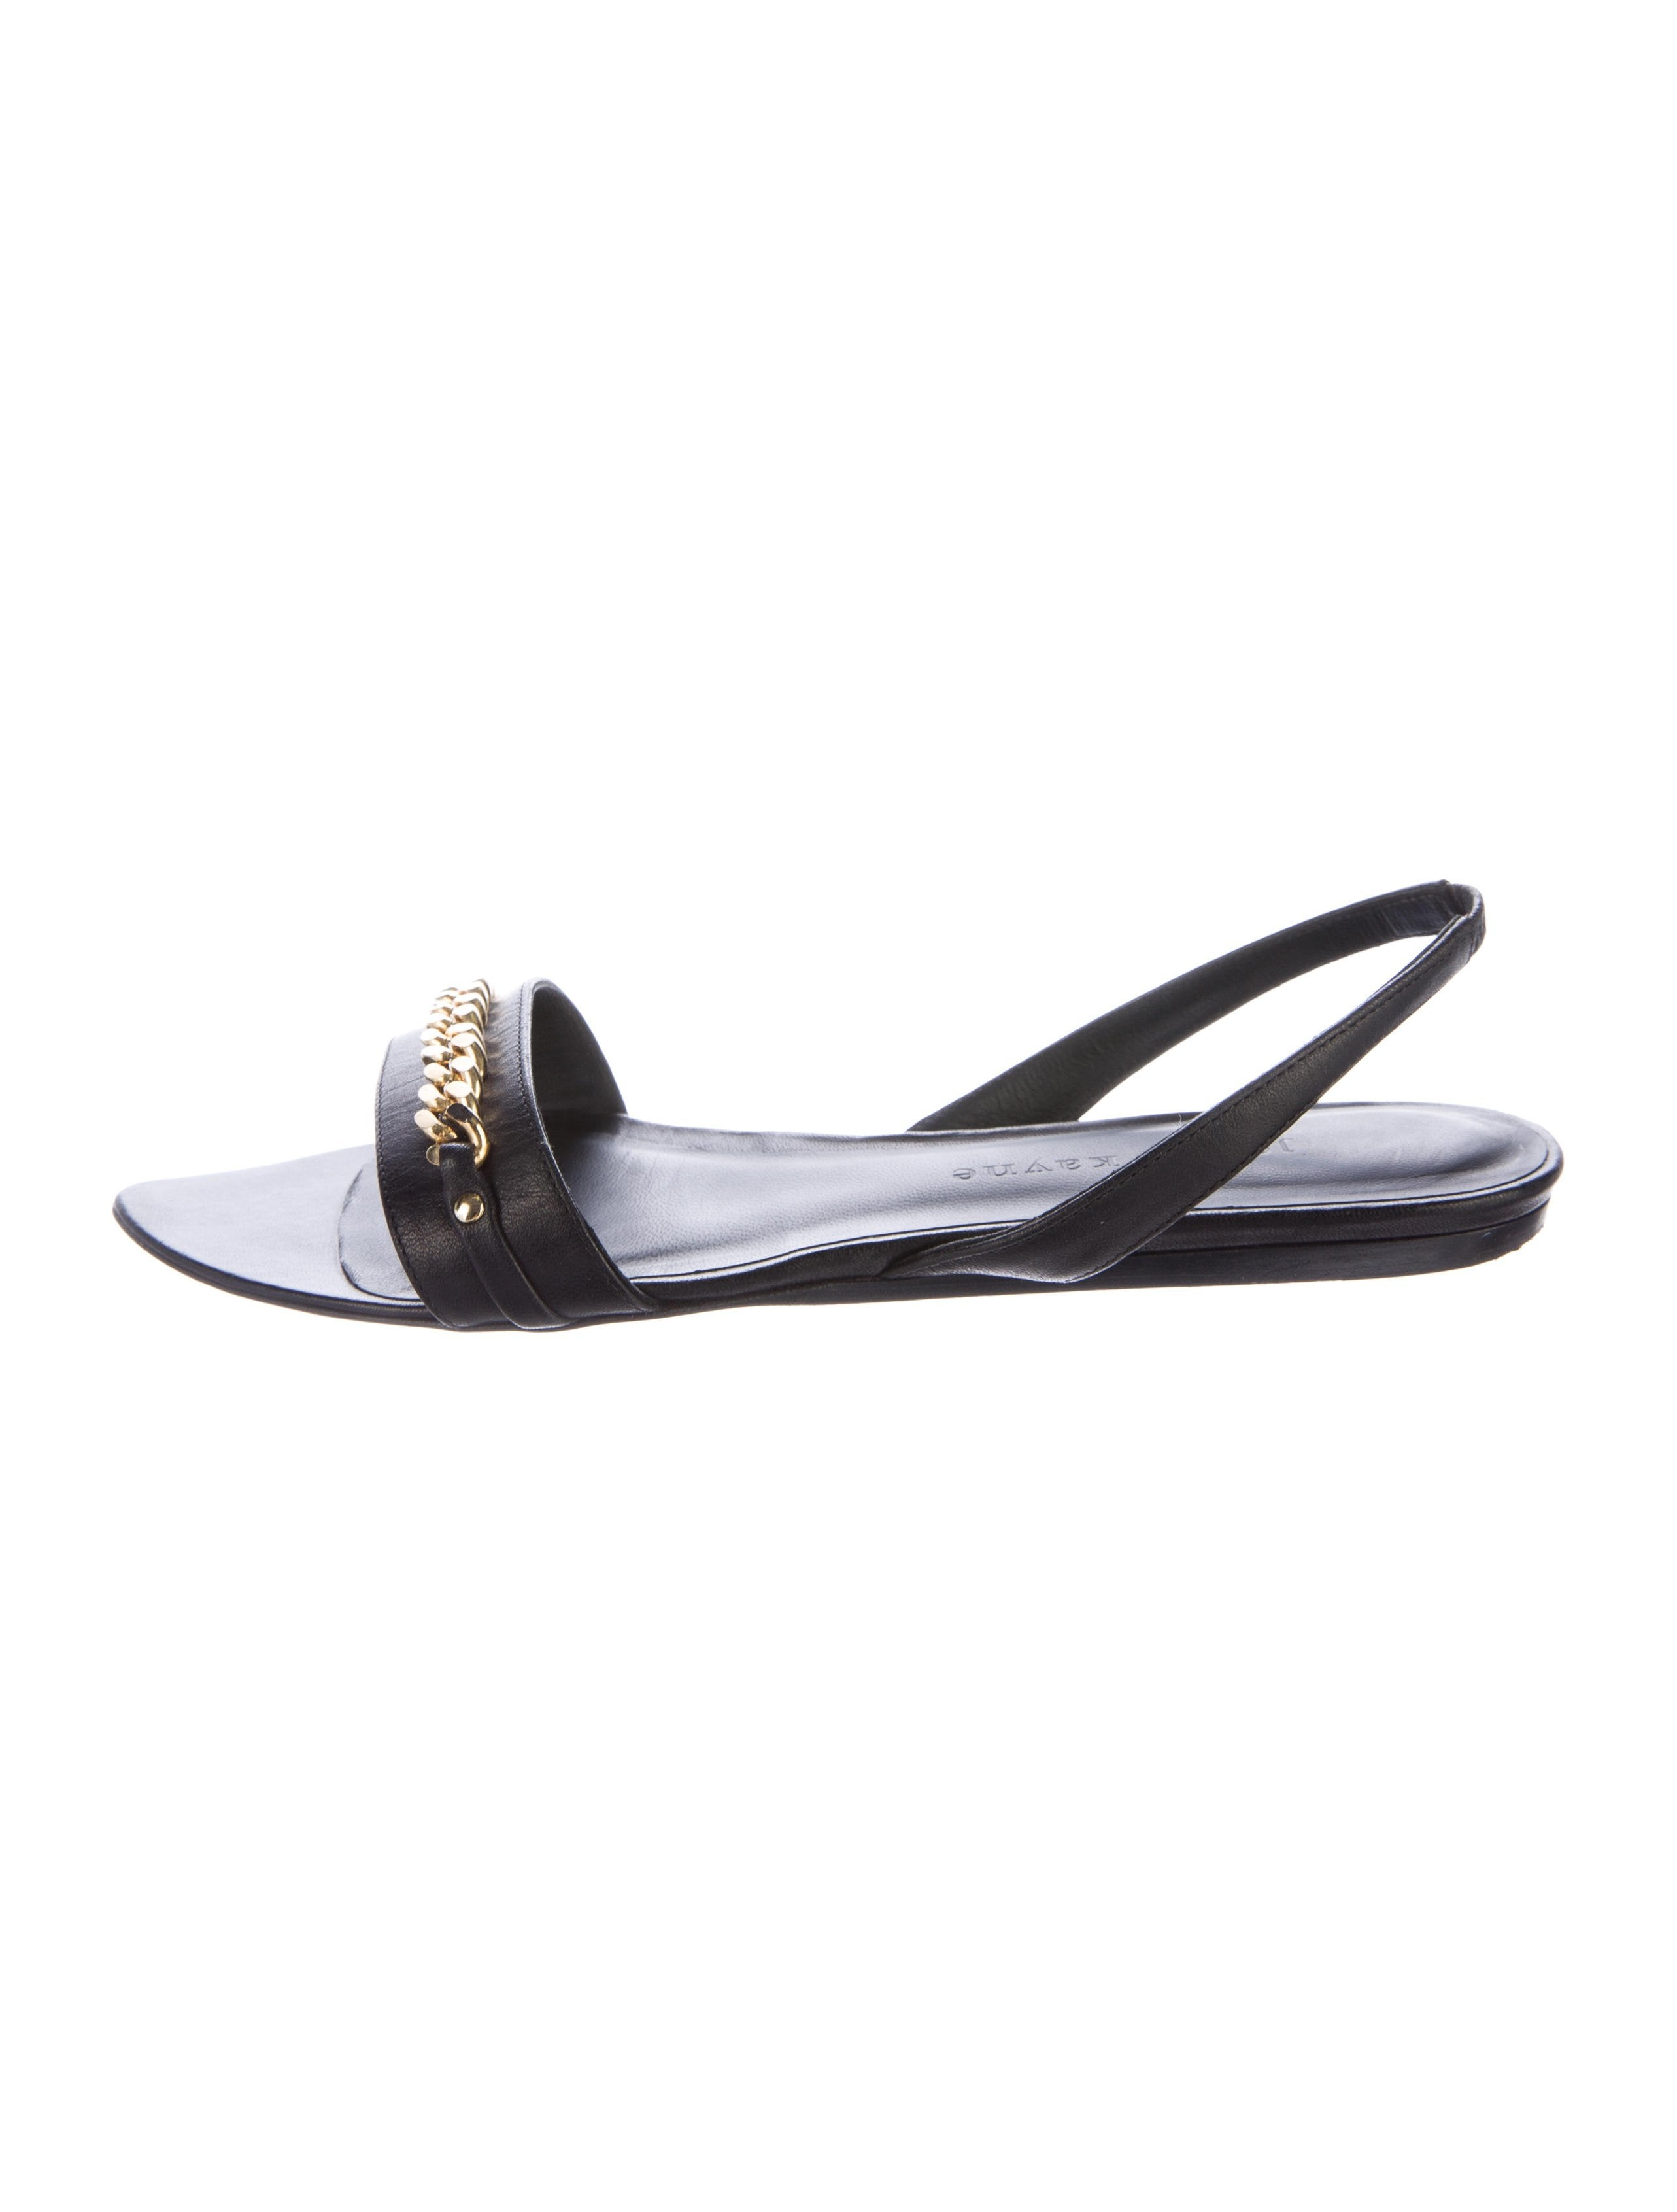 outlet professional sale outlet locations Jenni Kayne Chain-Link Leather Sandals where can you find buy cheap price trY3i3